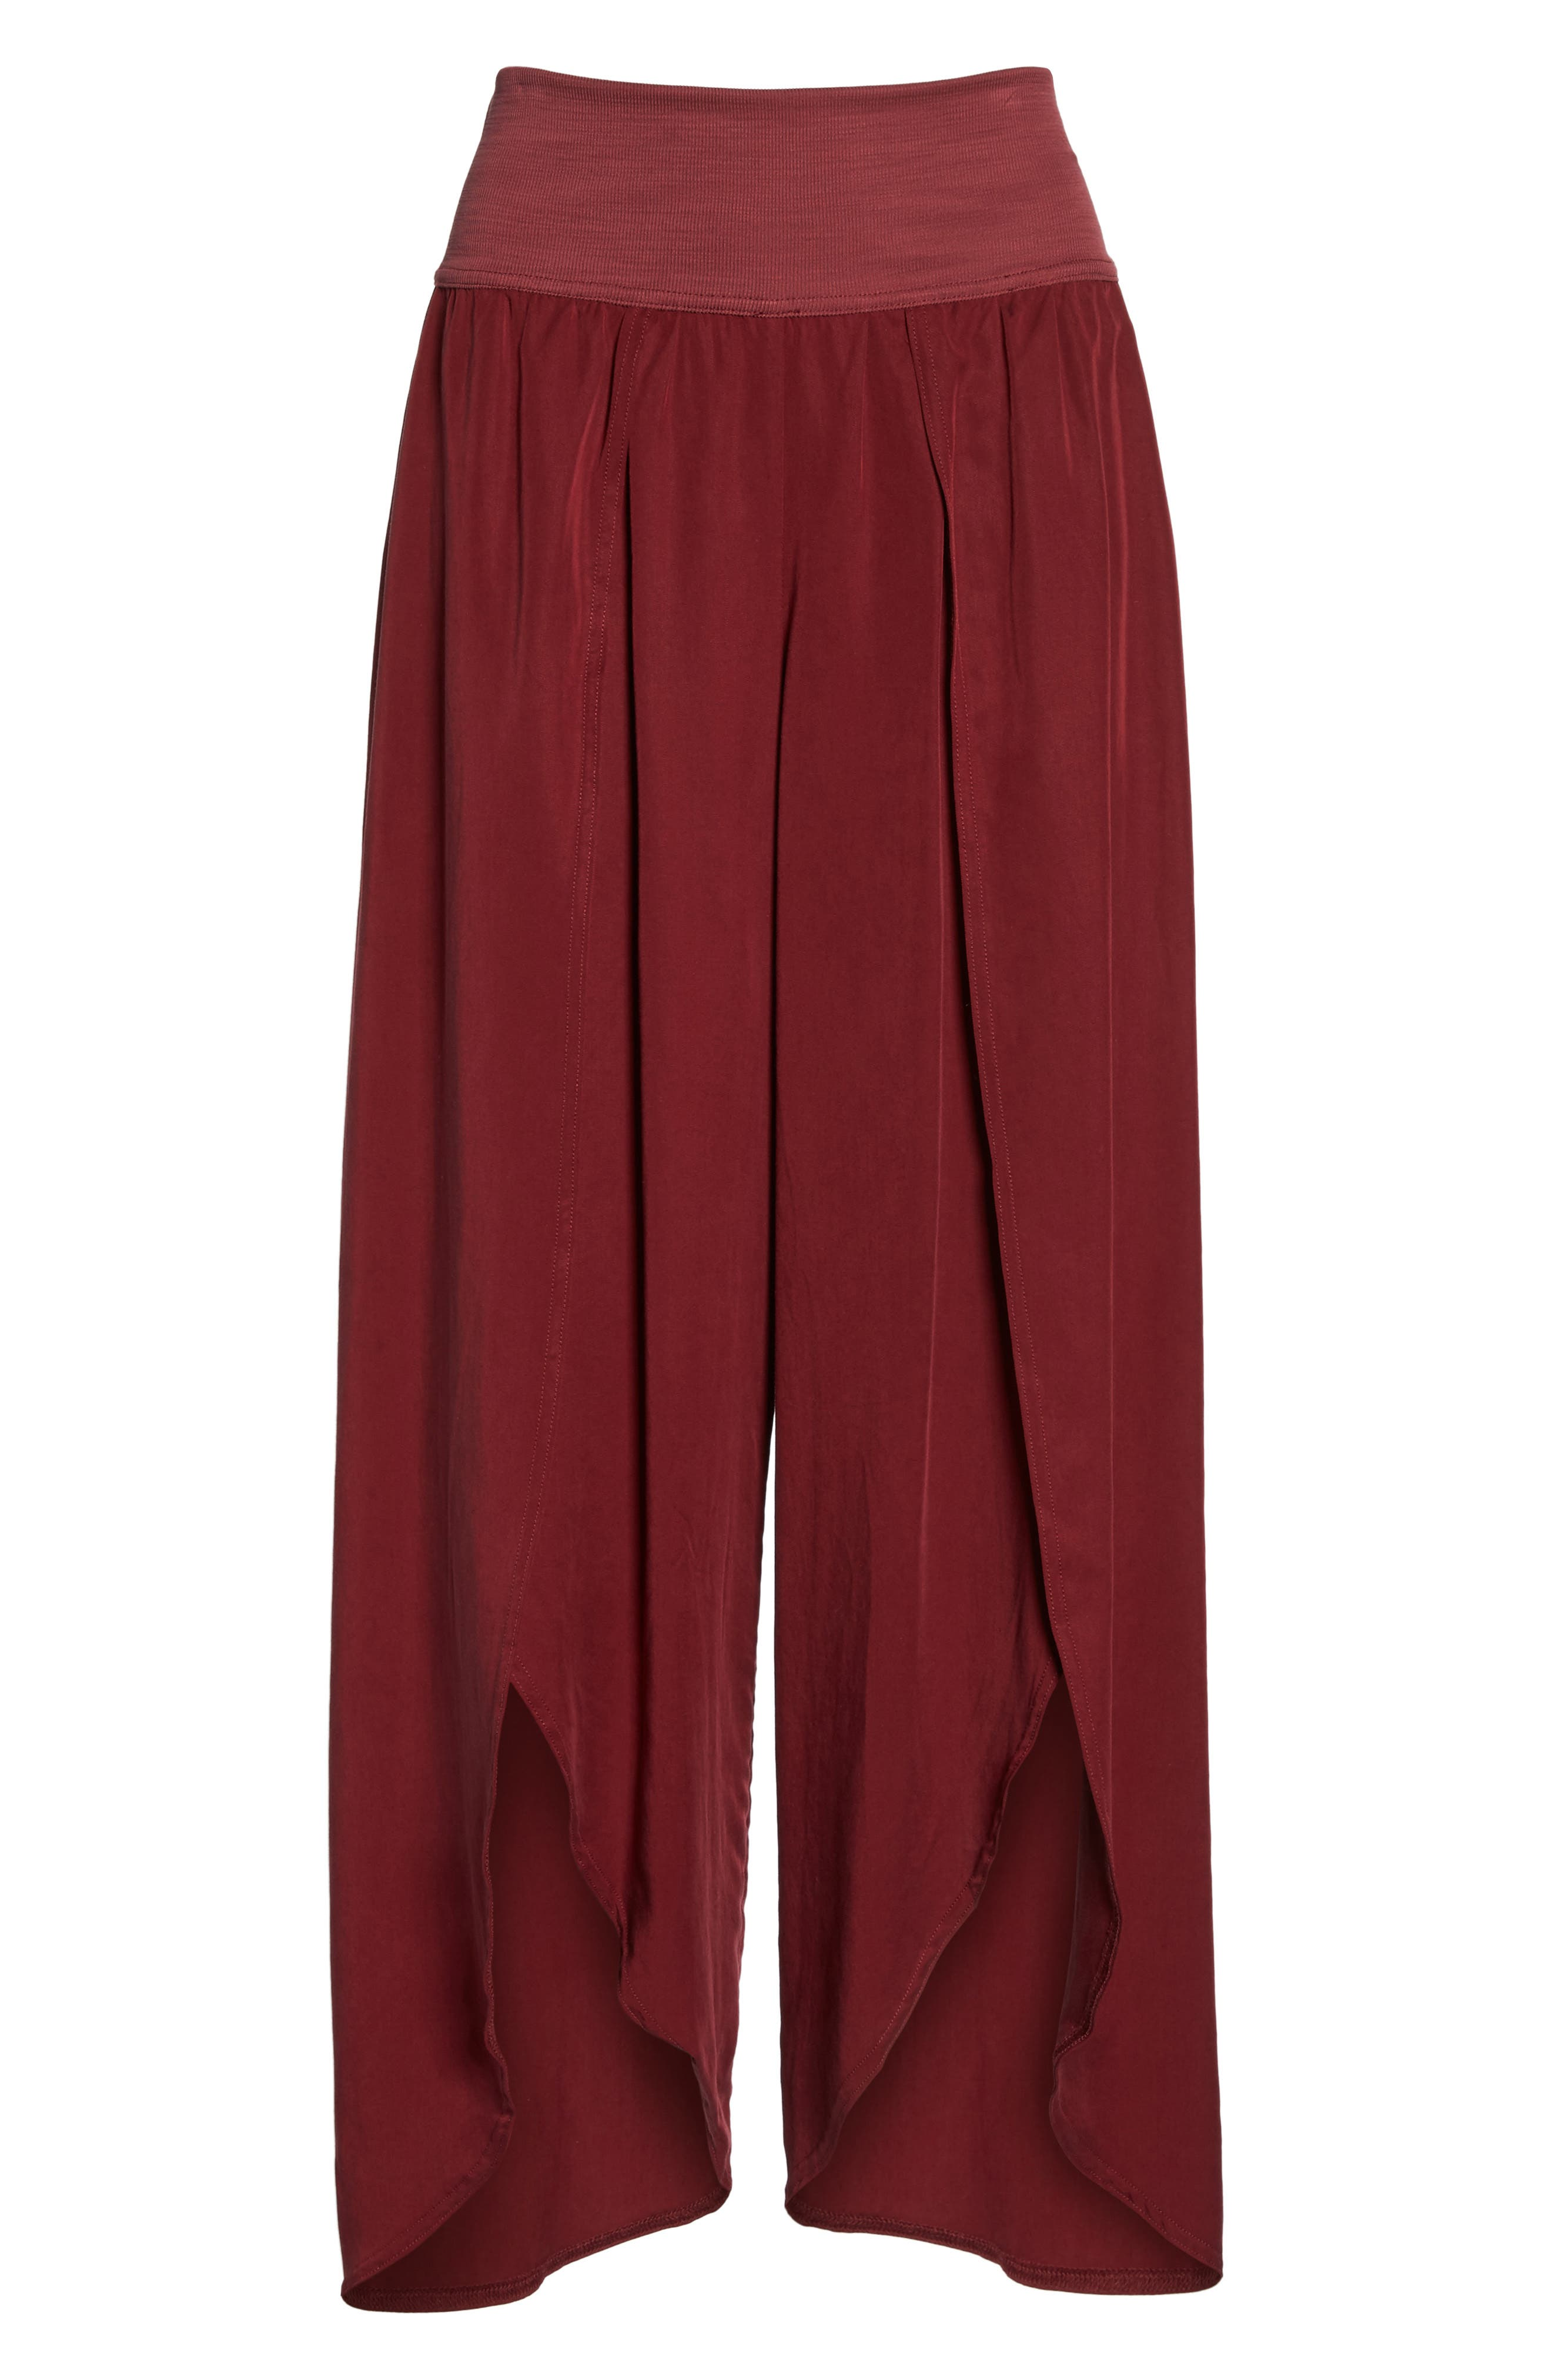 Lyrical Flow Pant,                             Alternate thumbnail 7, color,                             605